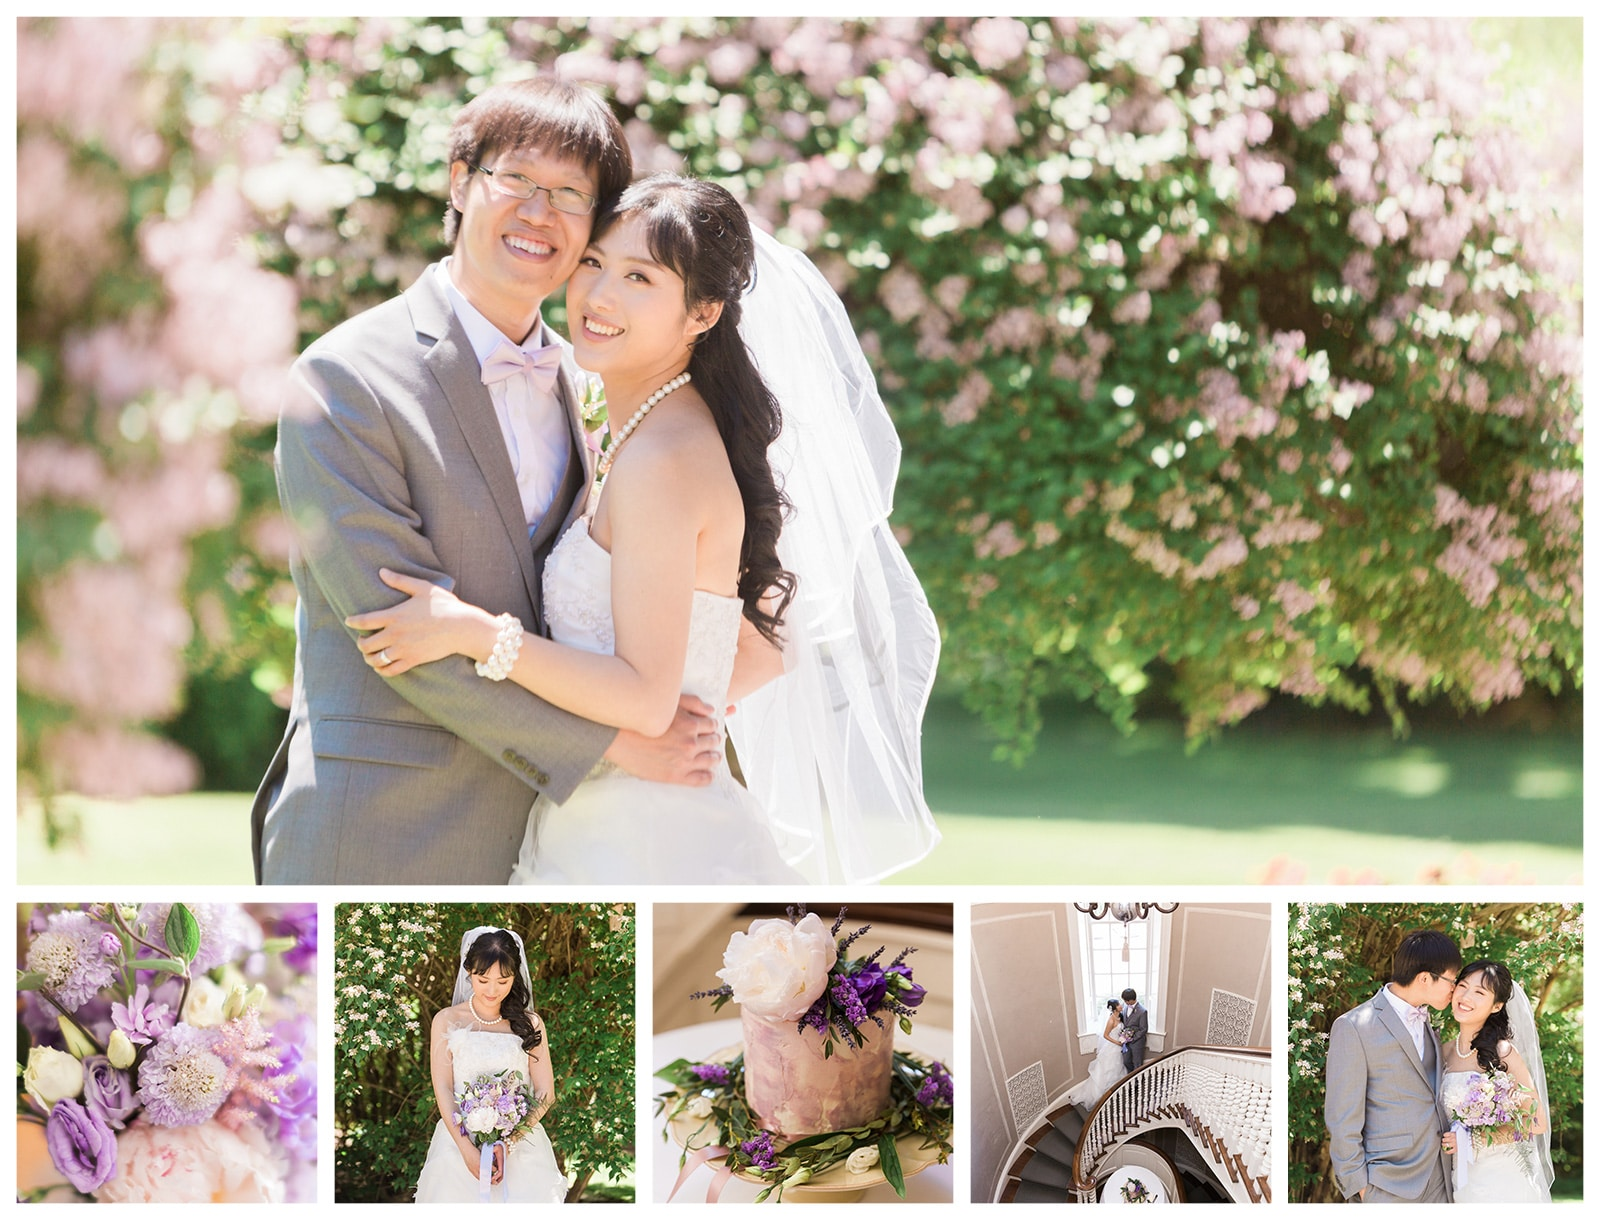 Pretty Spring Wedding at Estates of Sunnybrook: Helen + Aric